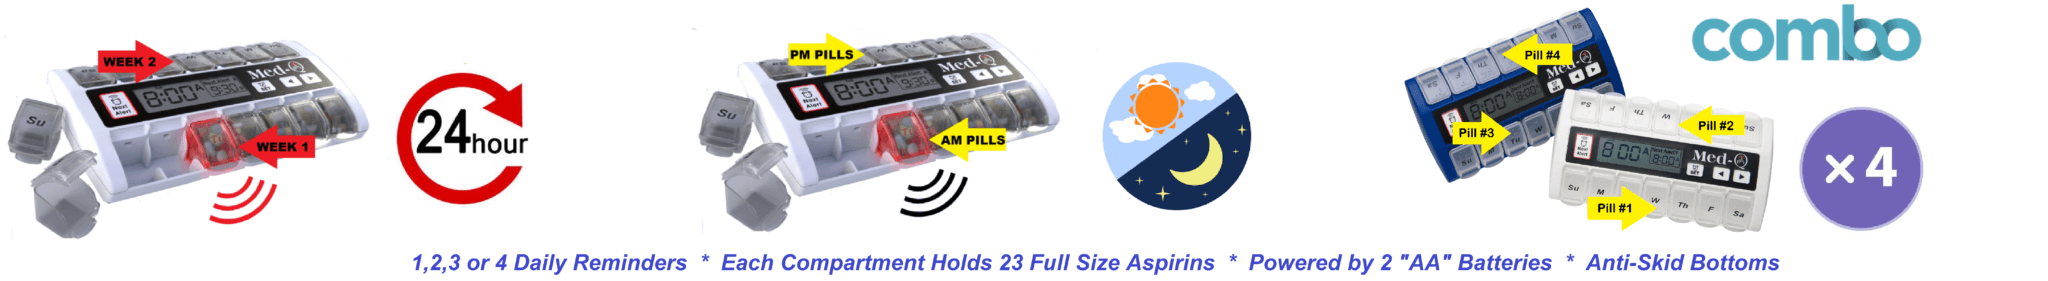 7 Day Pill Box with alarms